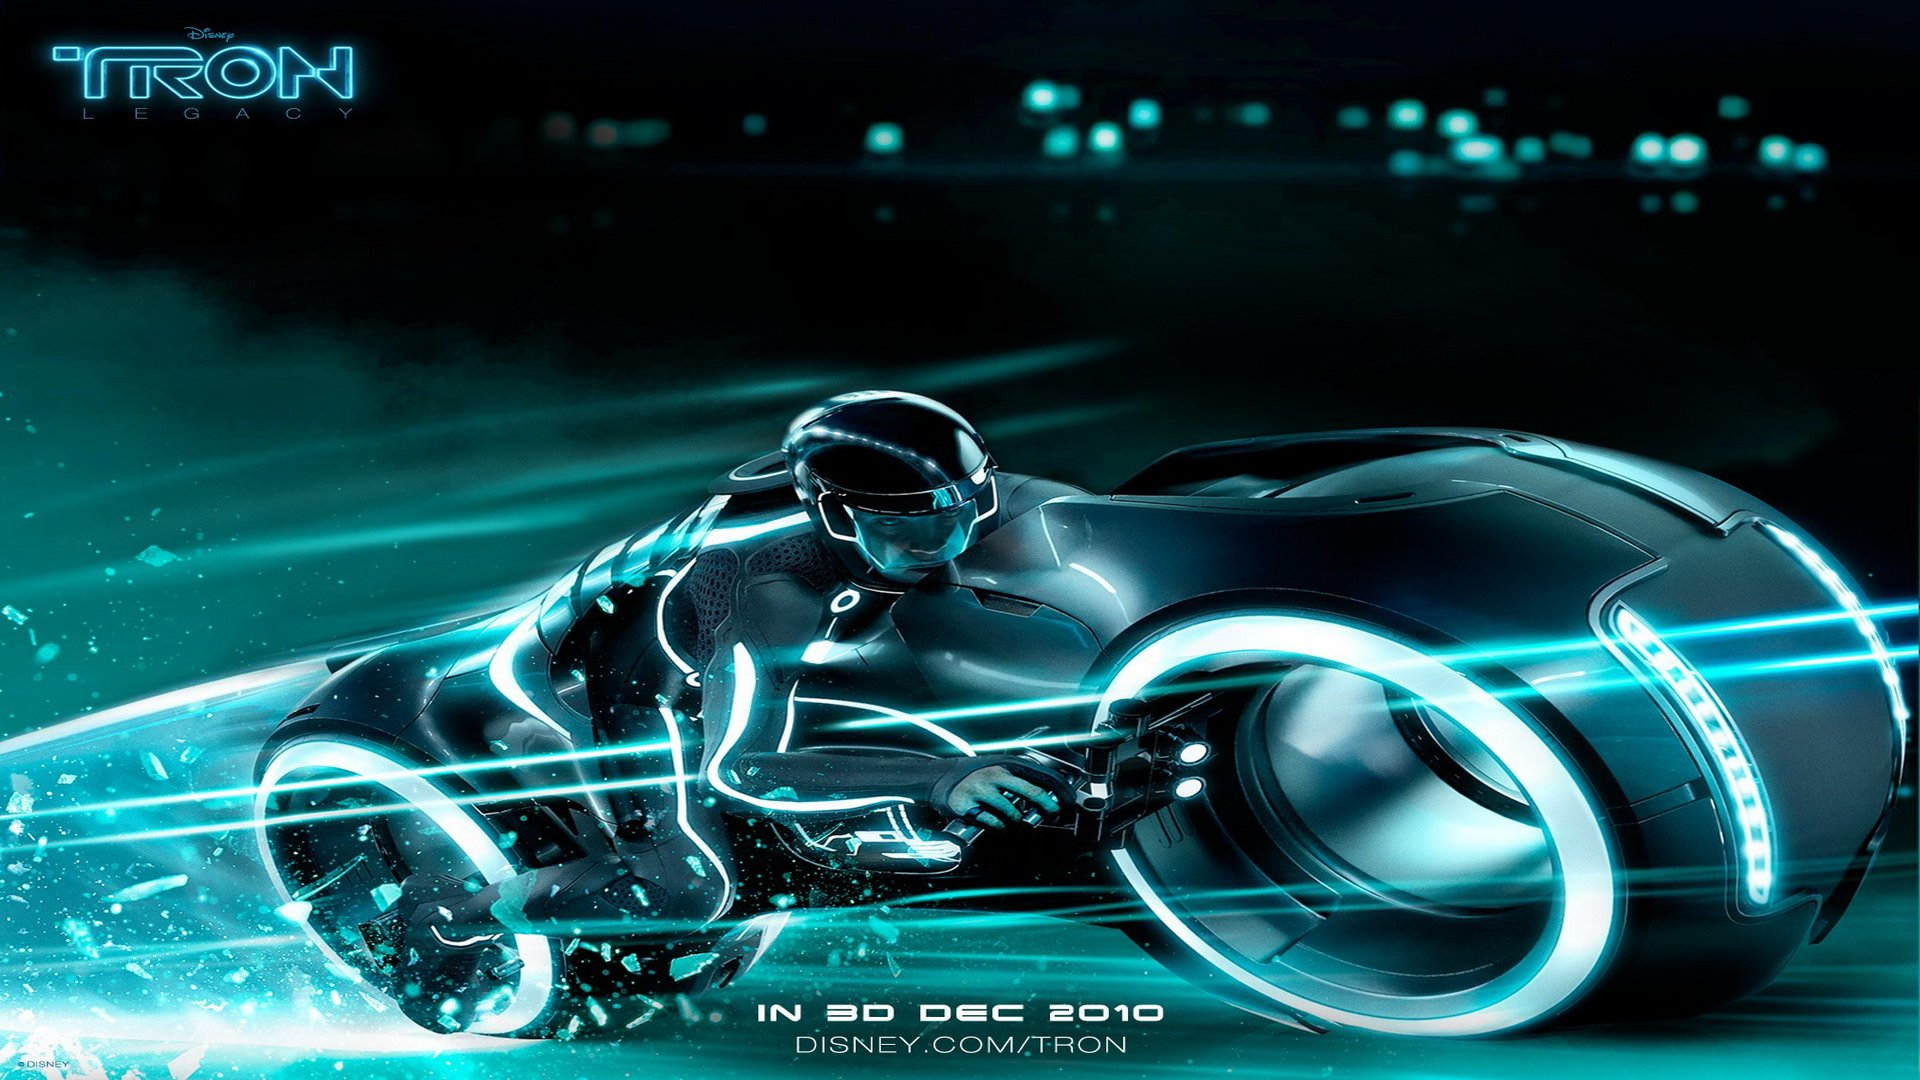 tron wallpaper hd style - photo #39